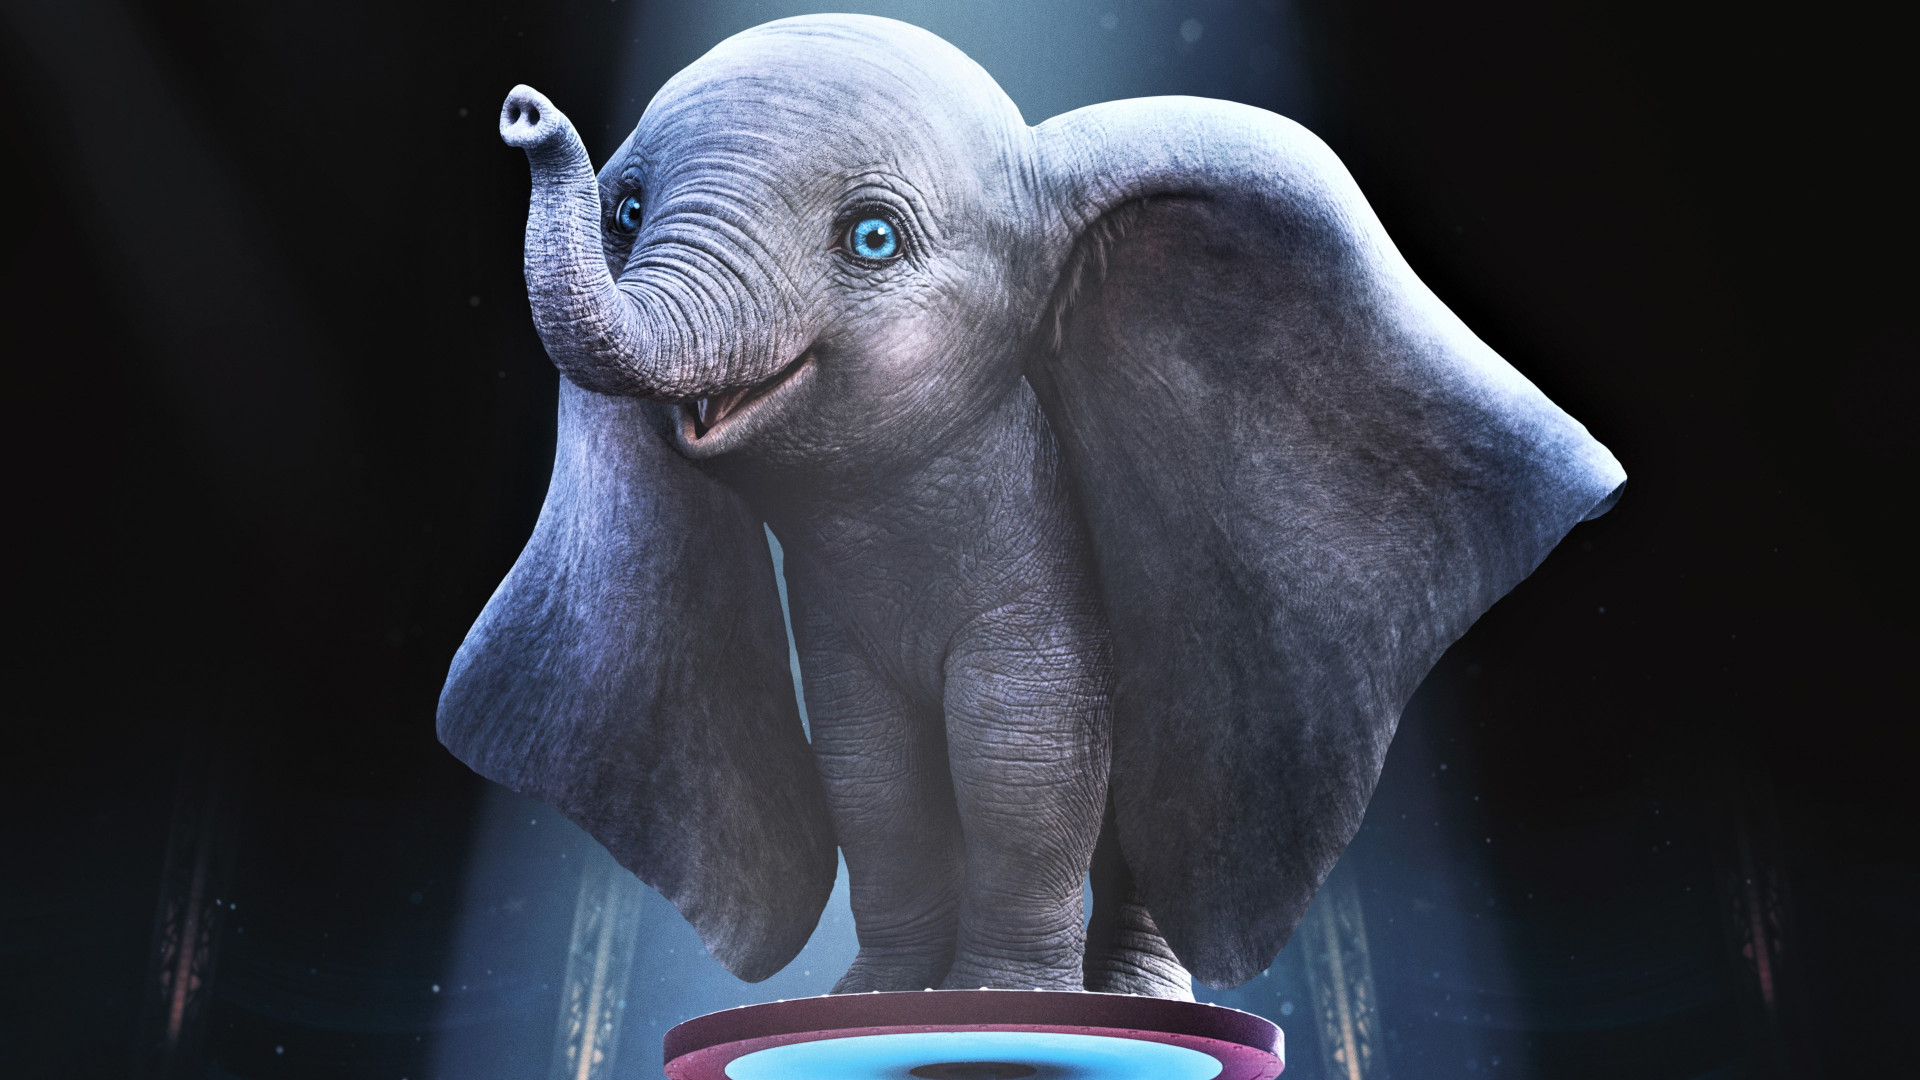 Dumbo wallpaper 1920x1080